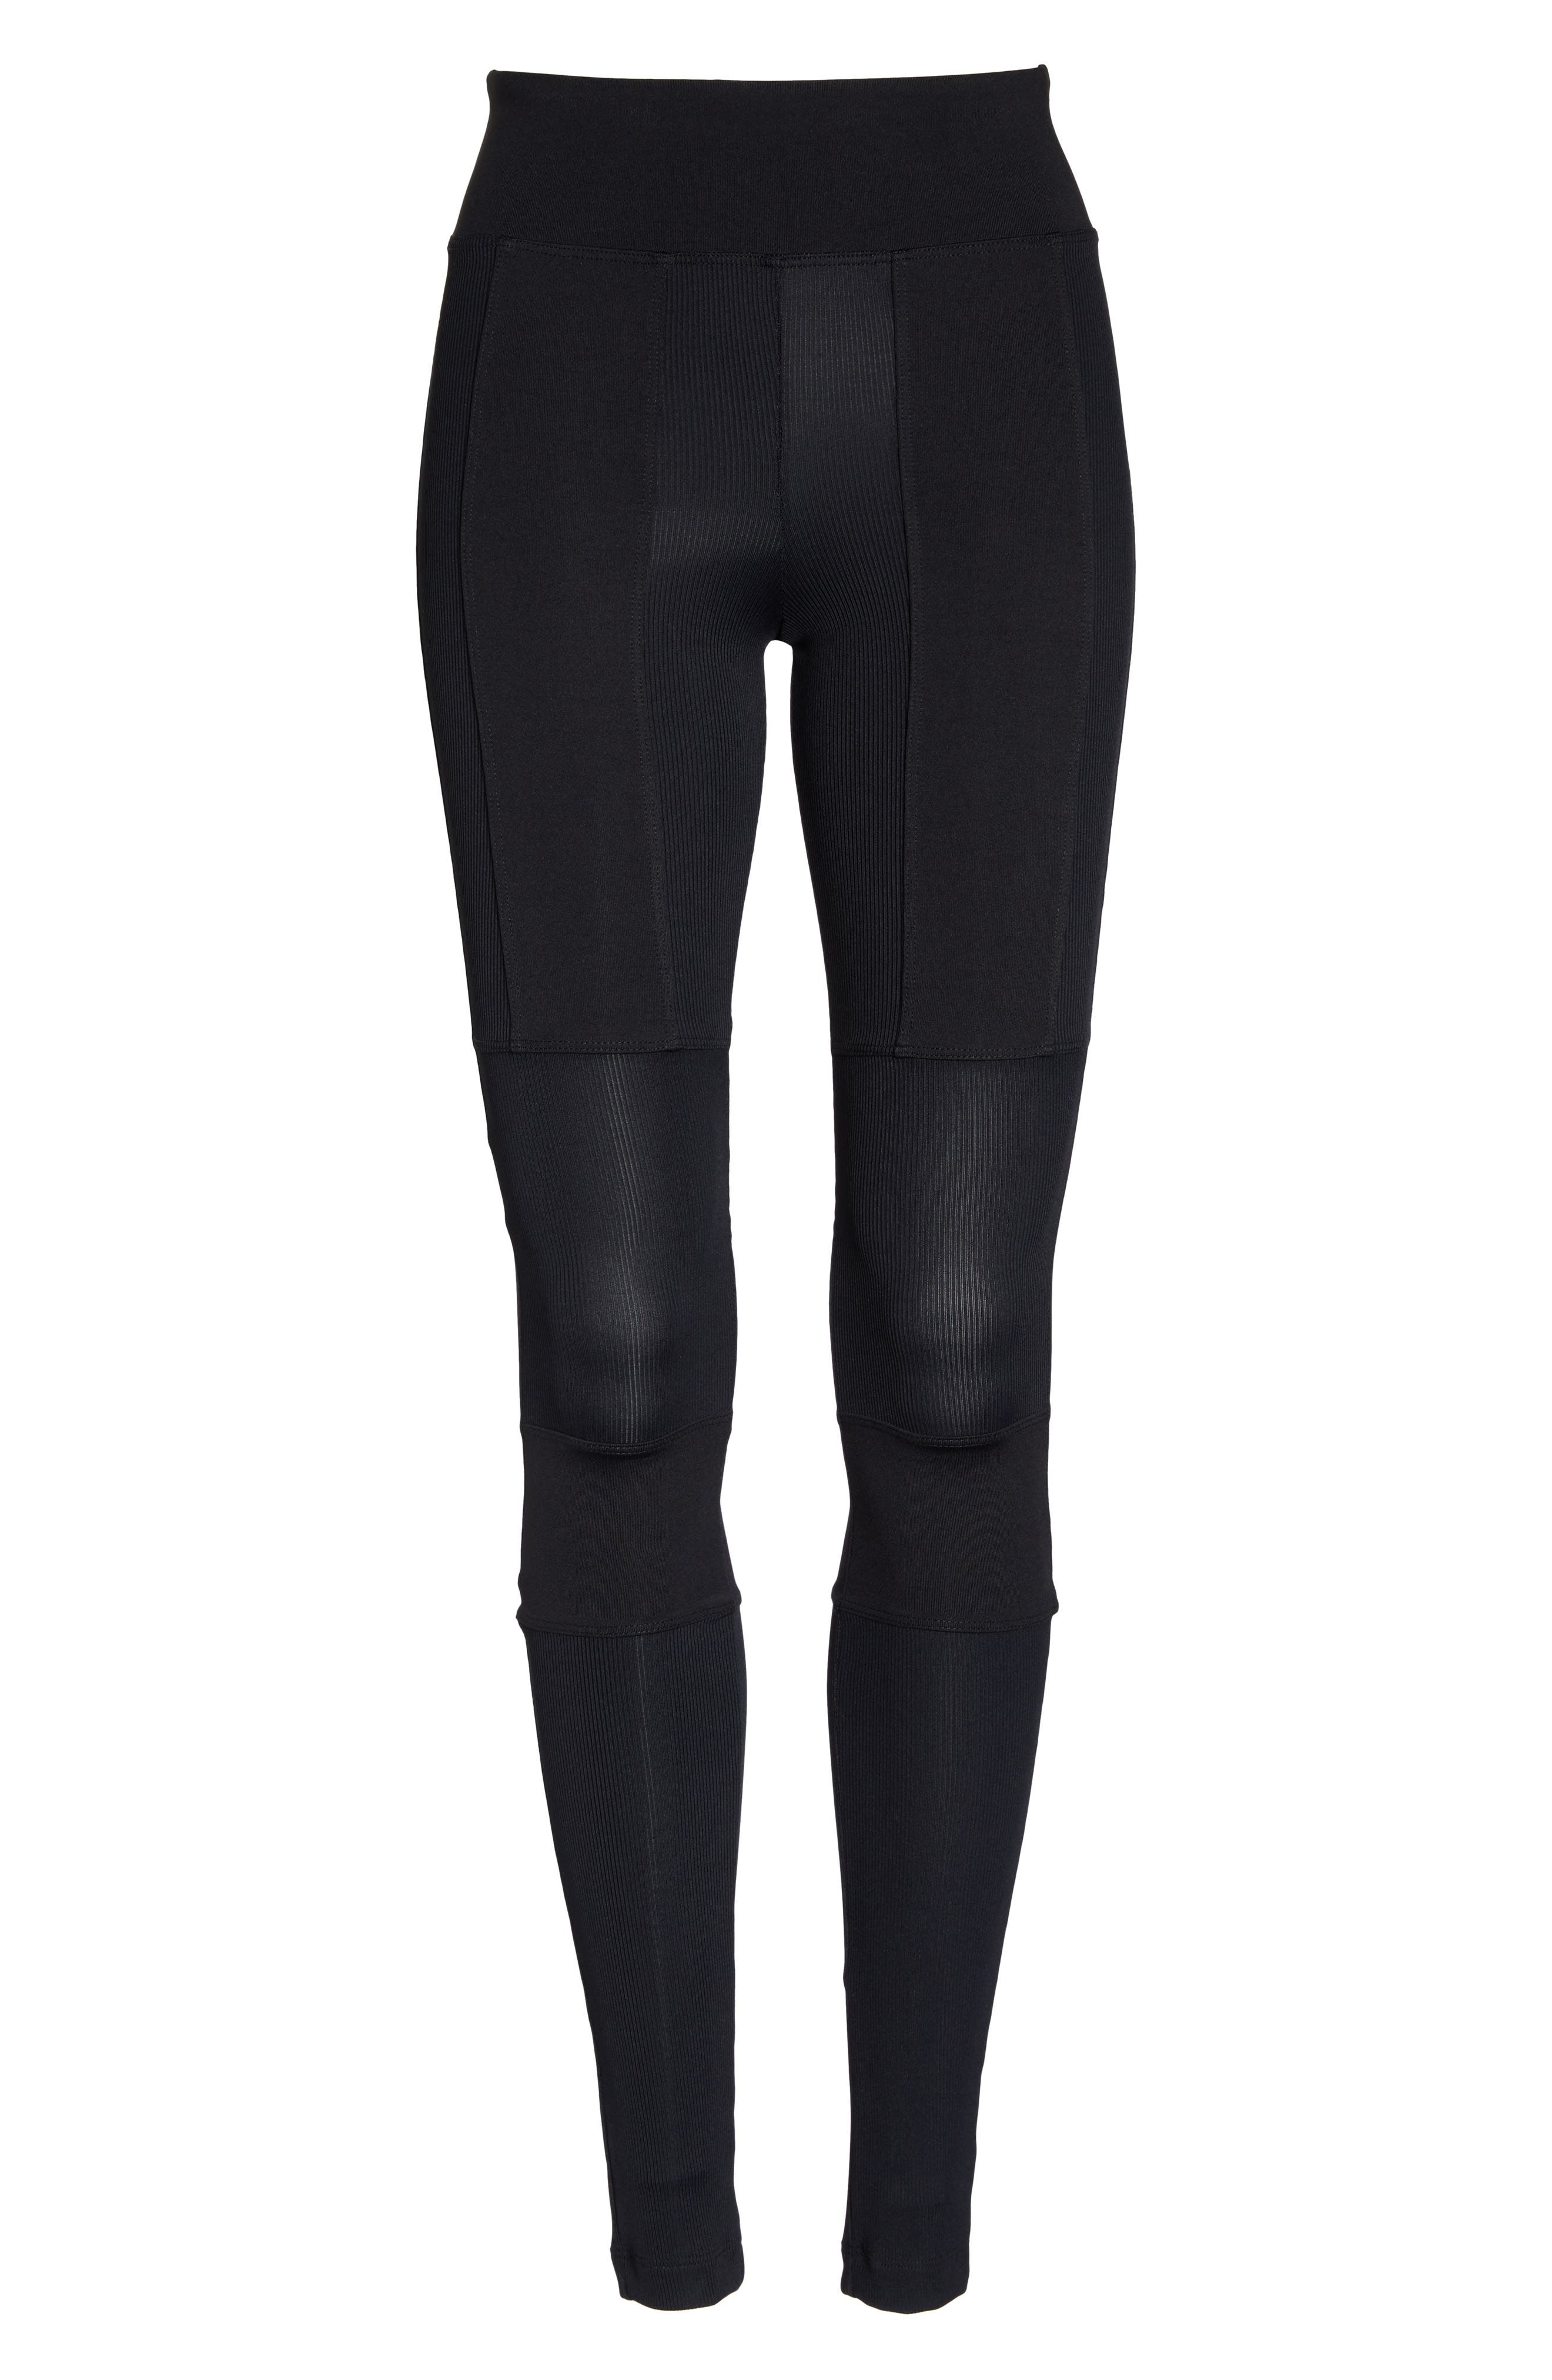 Rappel High Waist Leggings,                             Alternate thumbnail 7, color,                             001